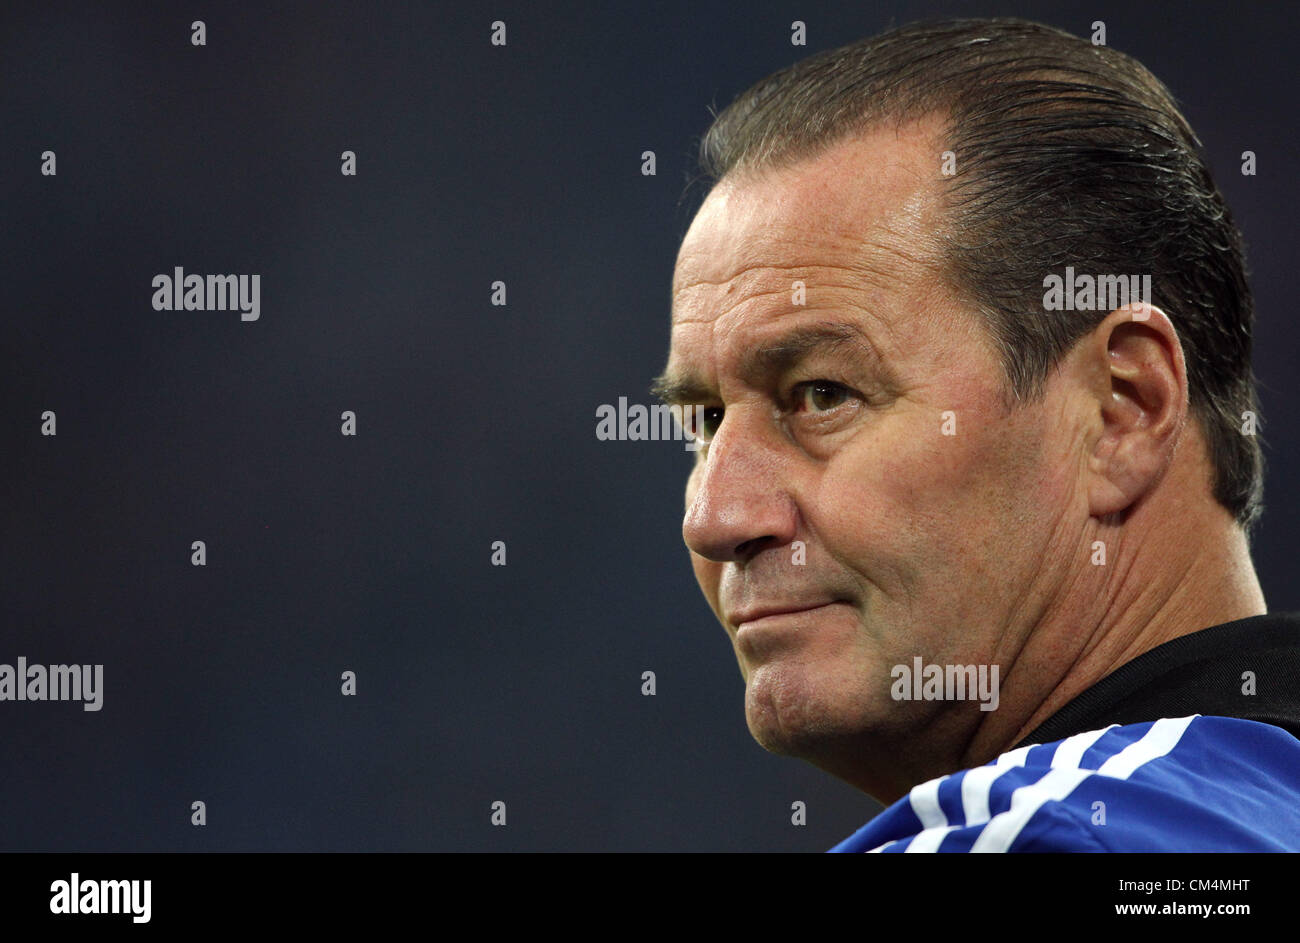 Gelsenkirchen, Germany. 3rd October 2012.  Schalke's coach Huub Stevens reacts during the UEFA Champions League - Stock Image